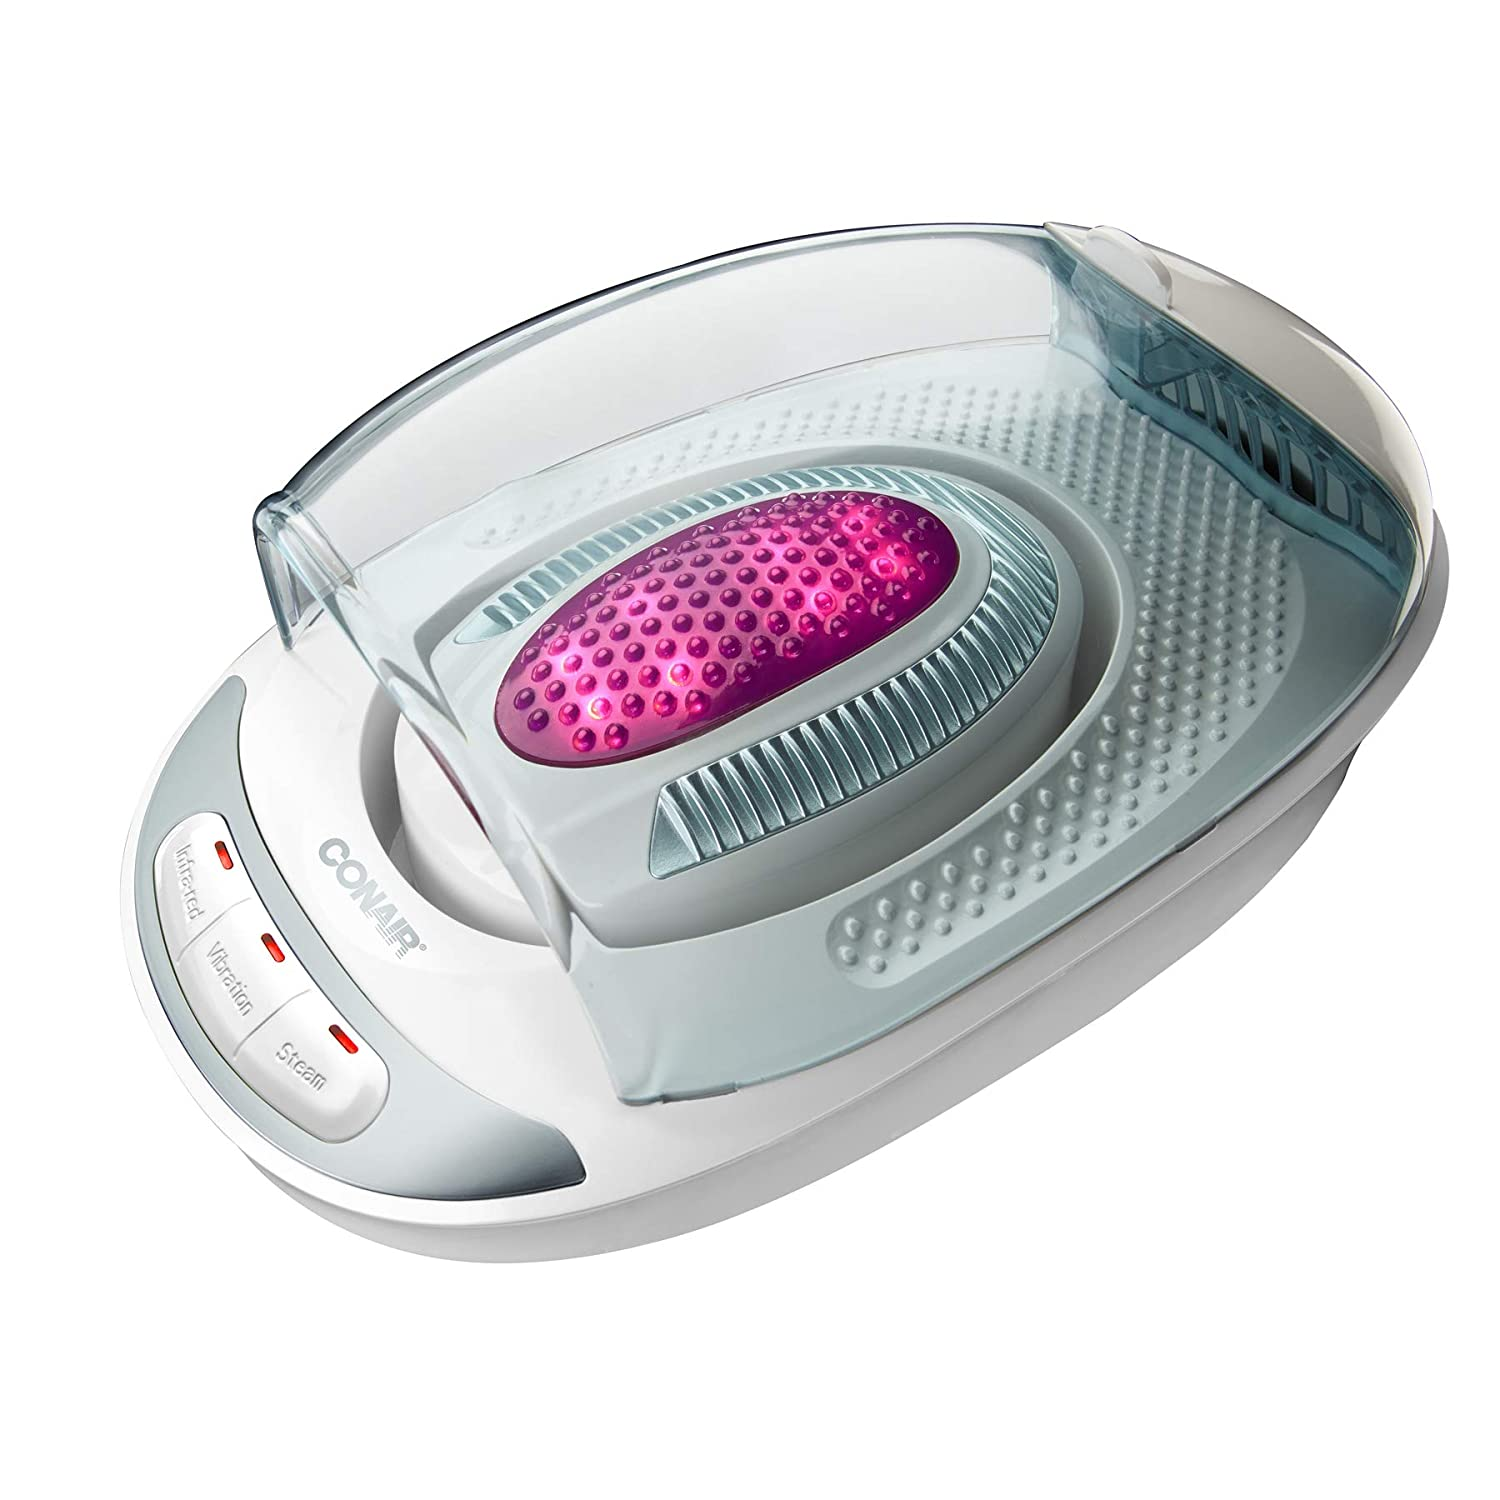 Conair HydroSpa Massaging Hand Sauna with Steam – delivers moisture to the skin and helps to soften dry hands